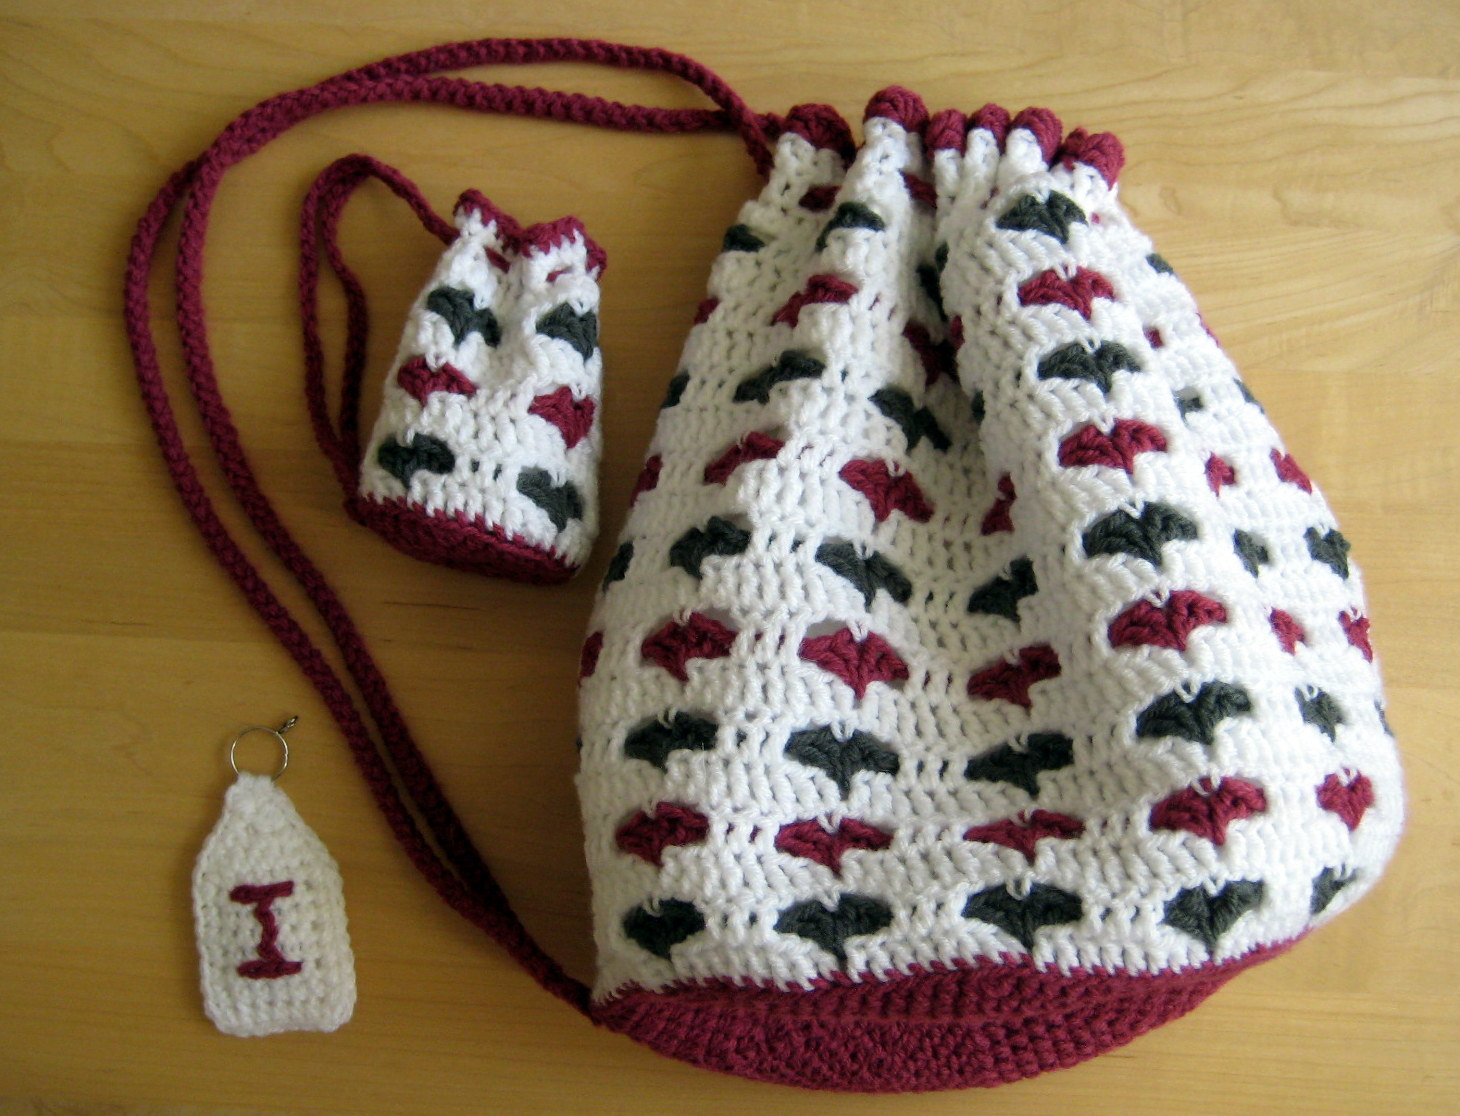 String Bag Crochet Pattern : Little Hearts Drawstring Bags Make My Day Creative